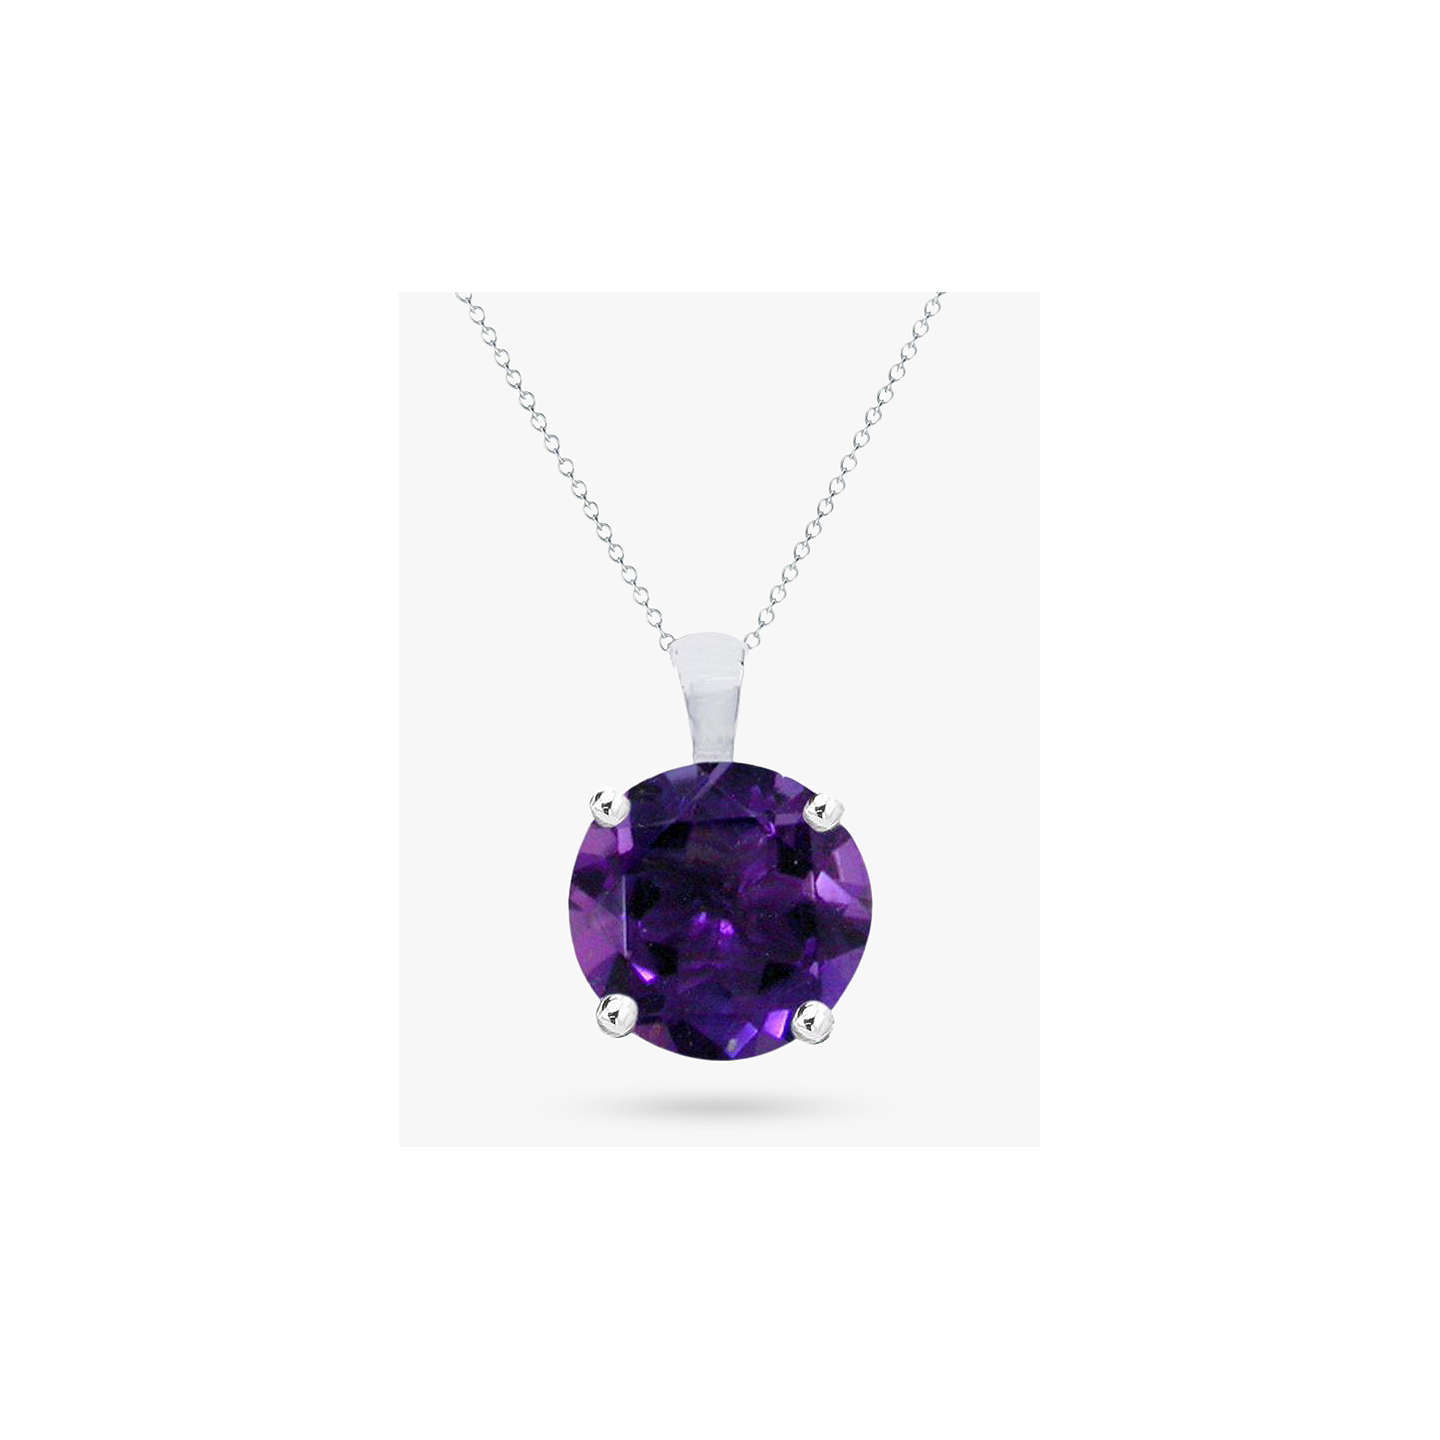 pendant atperrys image necklace product myshopify crystal products jewellery matans store crystalamethystnecklace heart amethyst com